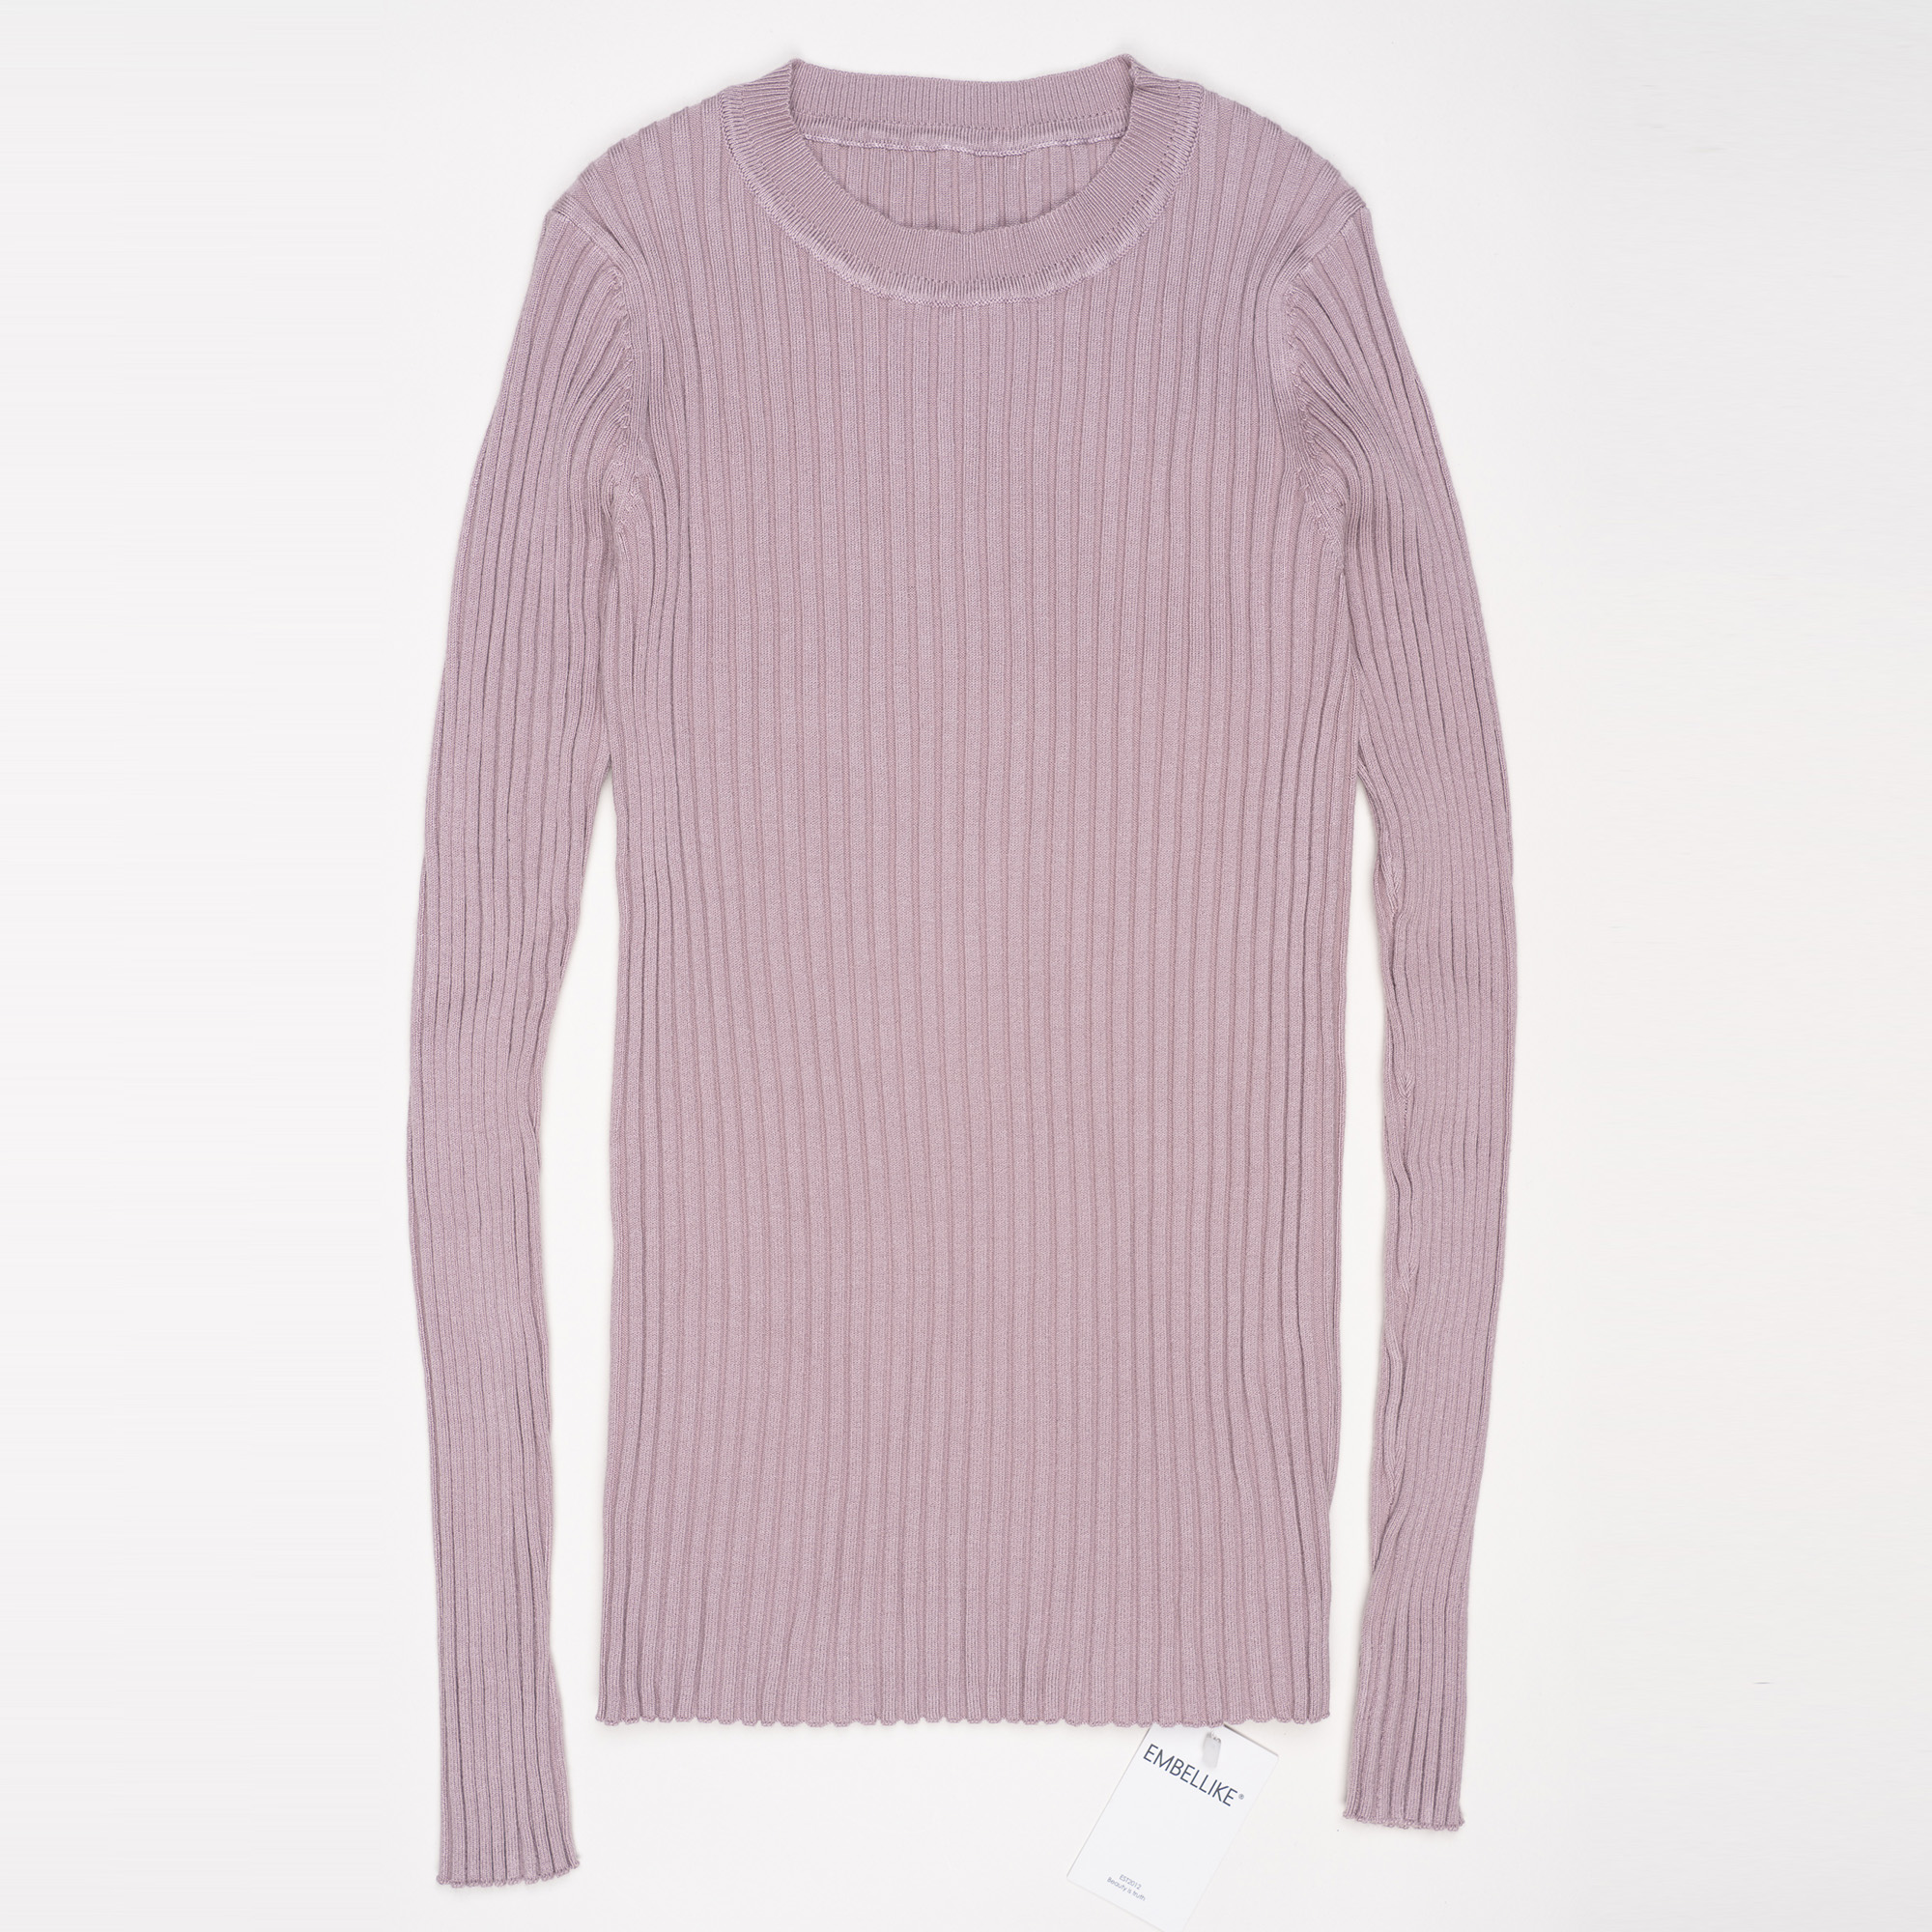 Women Sweater Pullover Basic Ribbed Sweaters Cotton Tops Knitted Solid Crew Neck With Thumb Hole 18